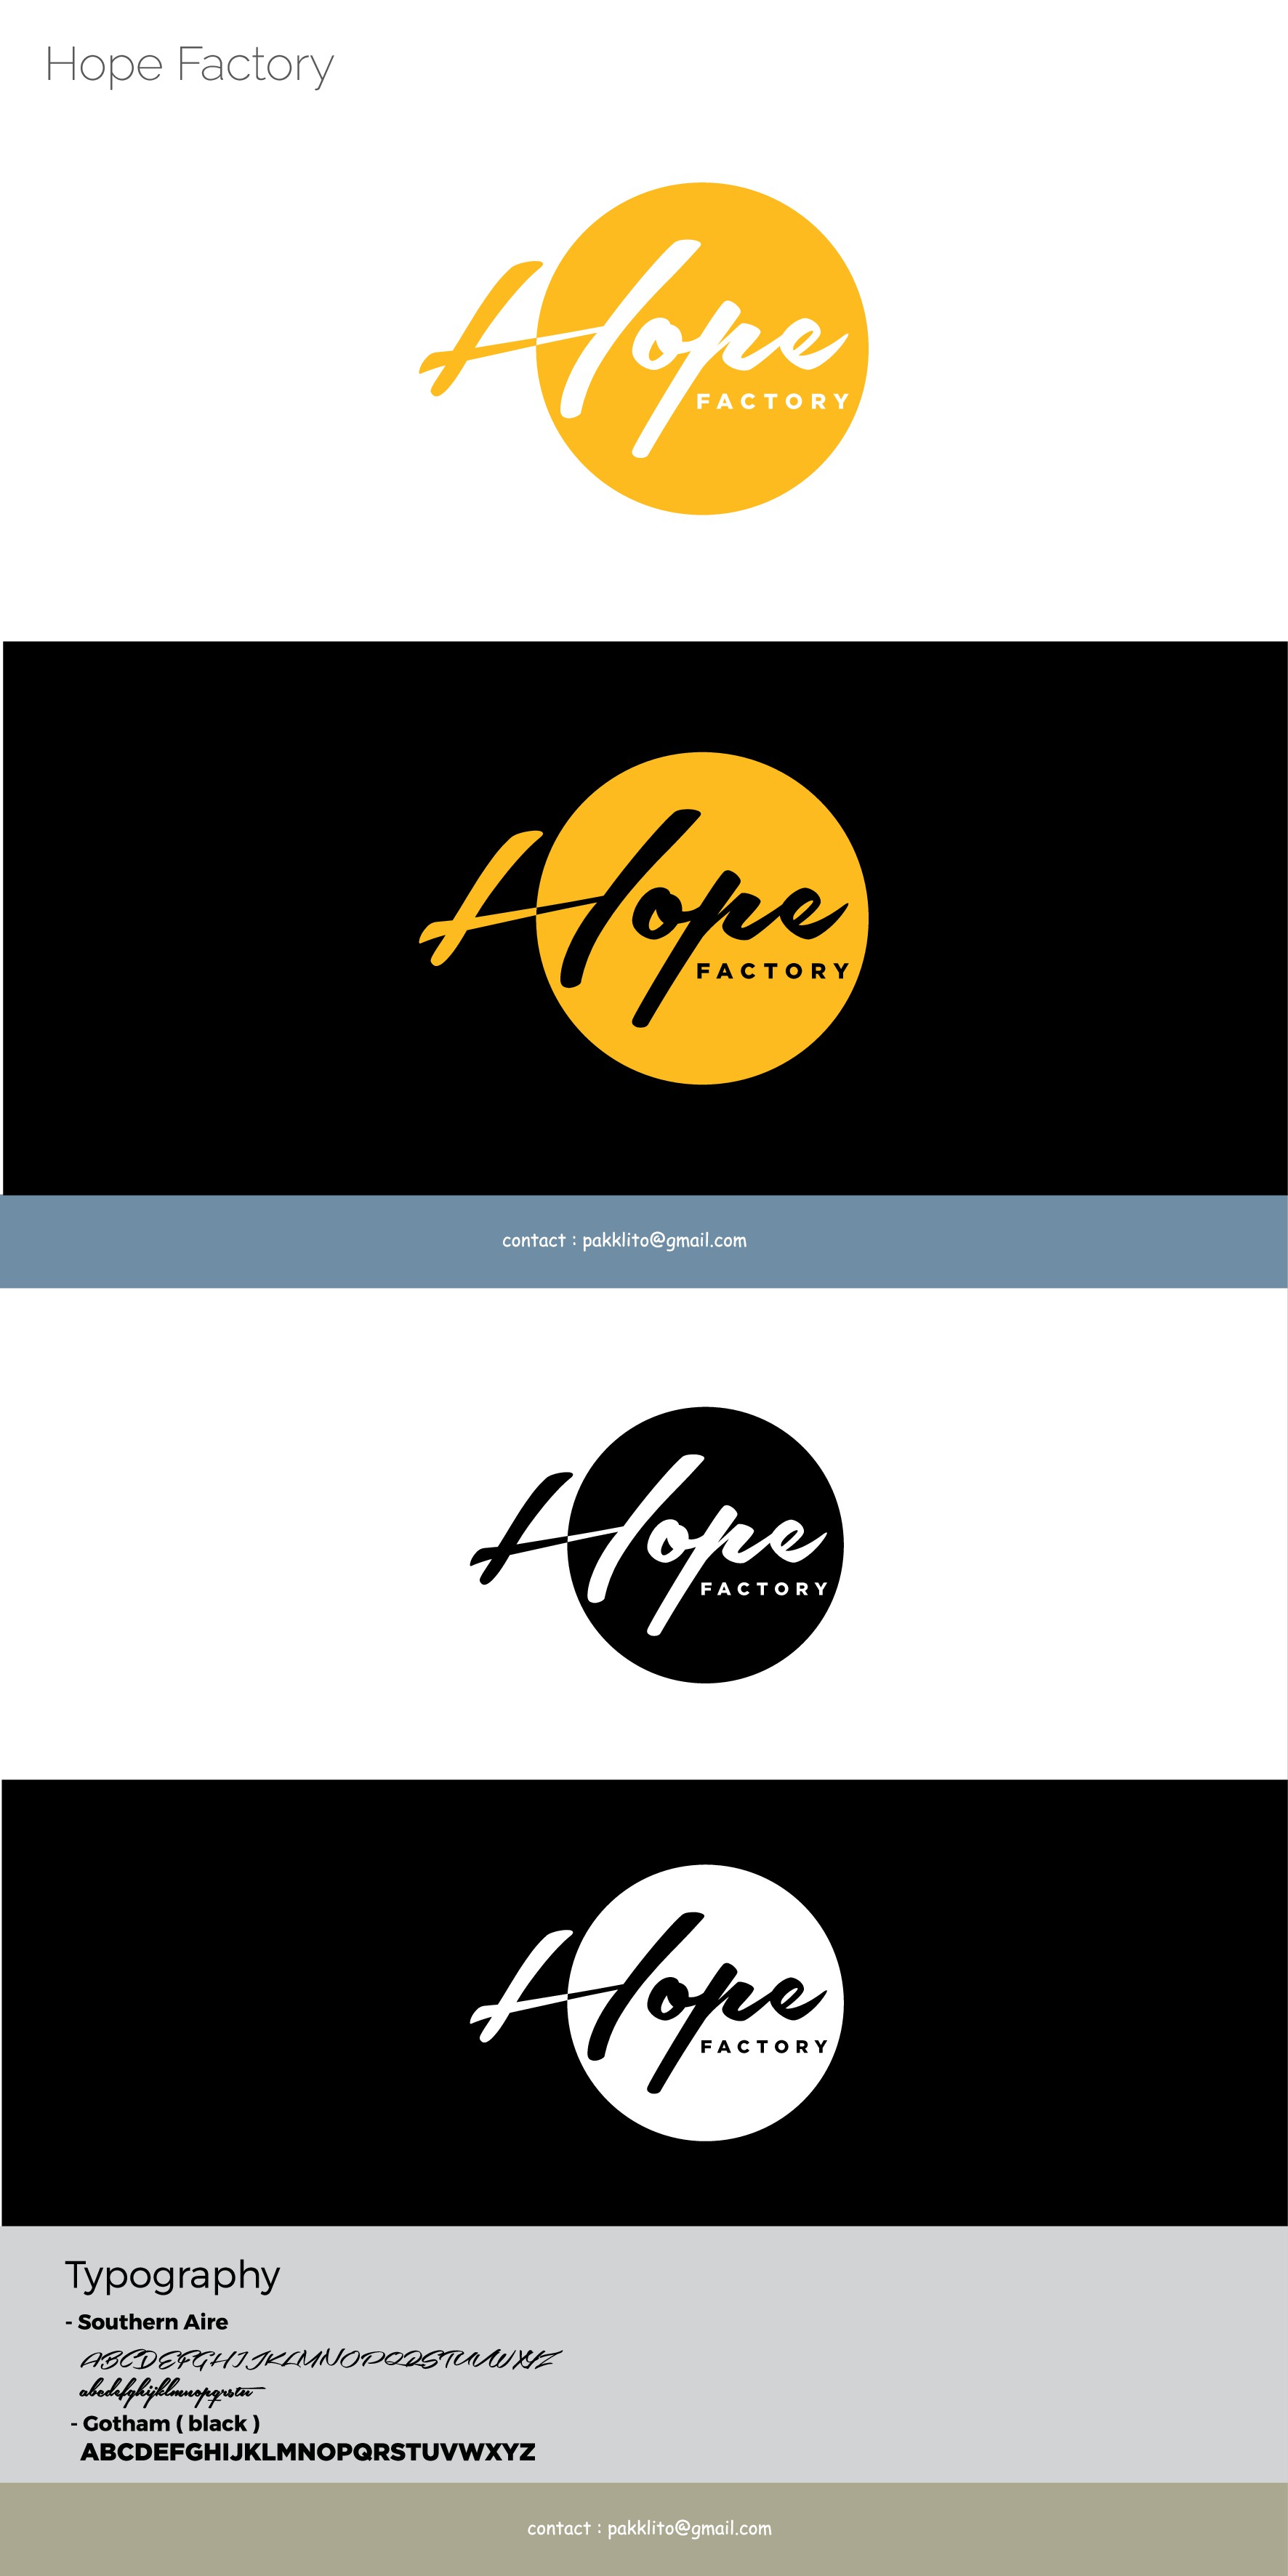 Hope Factory needs a new meaningful, modern logo